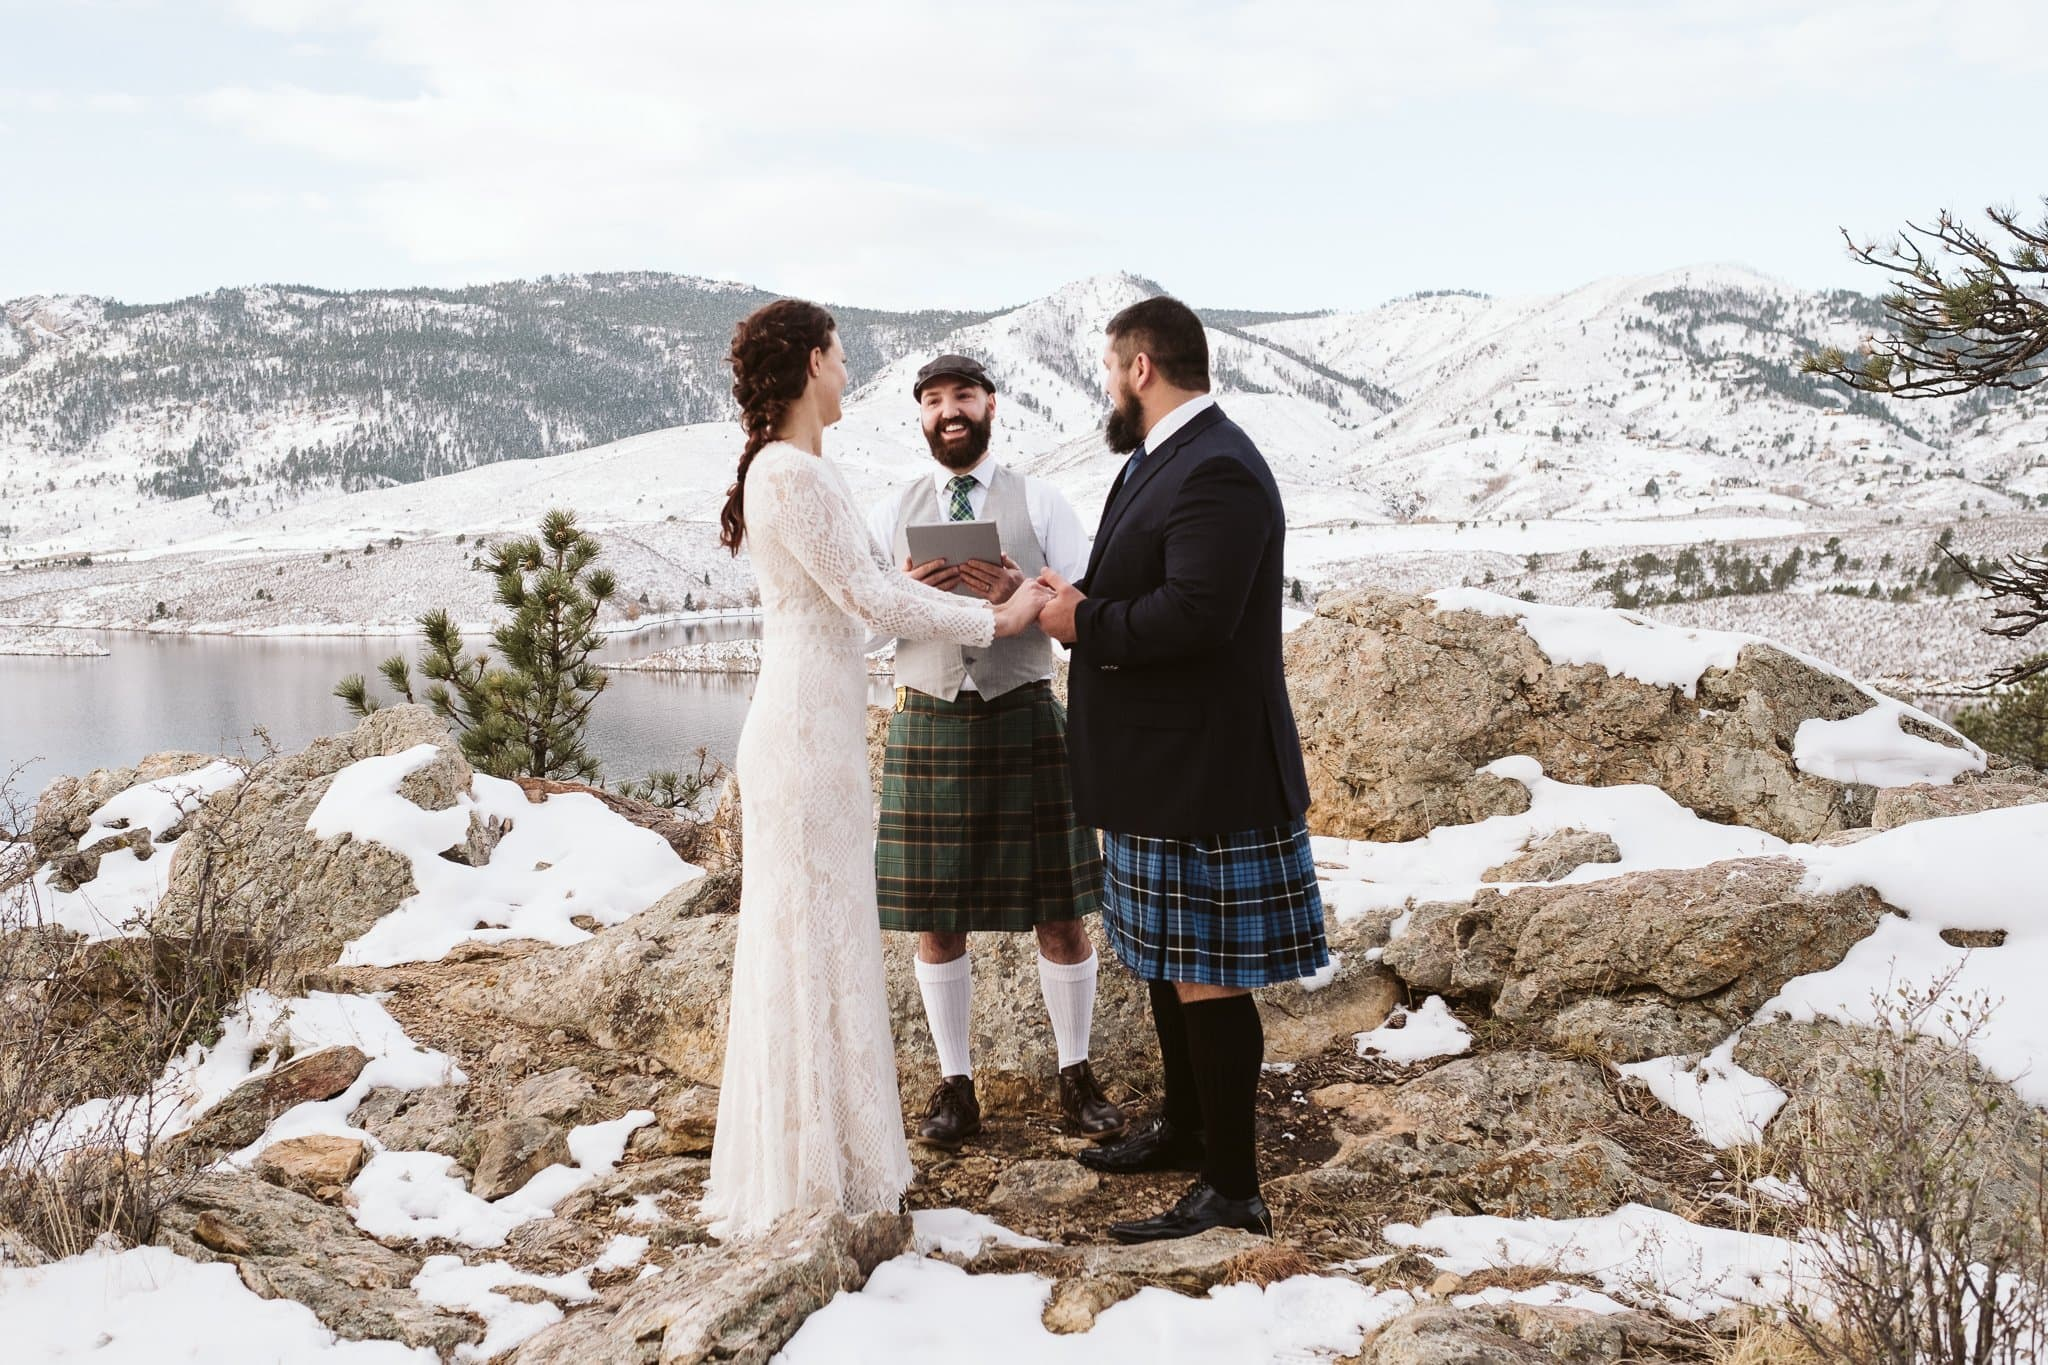 Elopement ceremony with officiant in Colorado